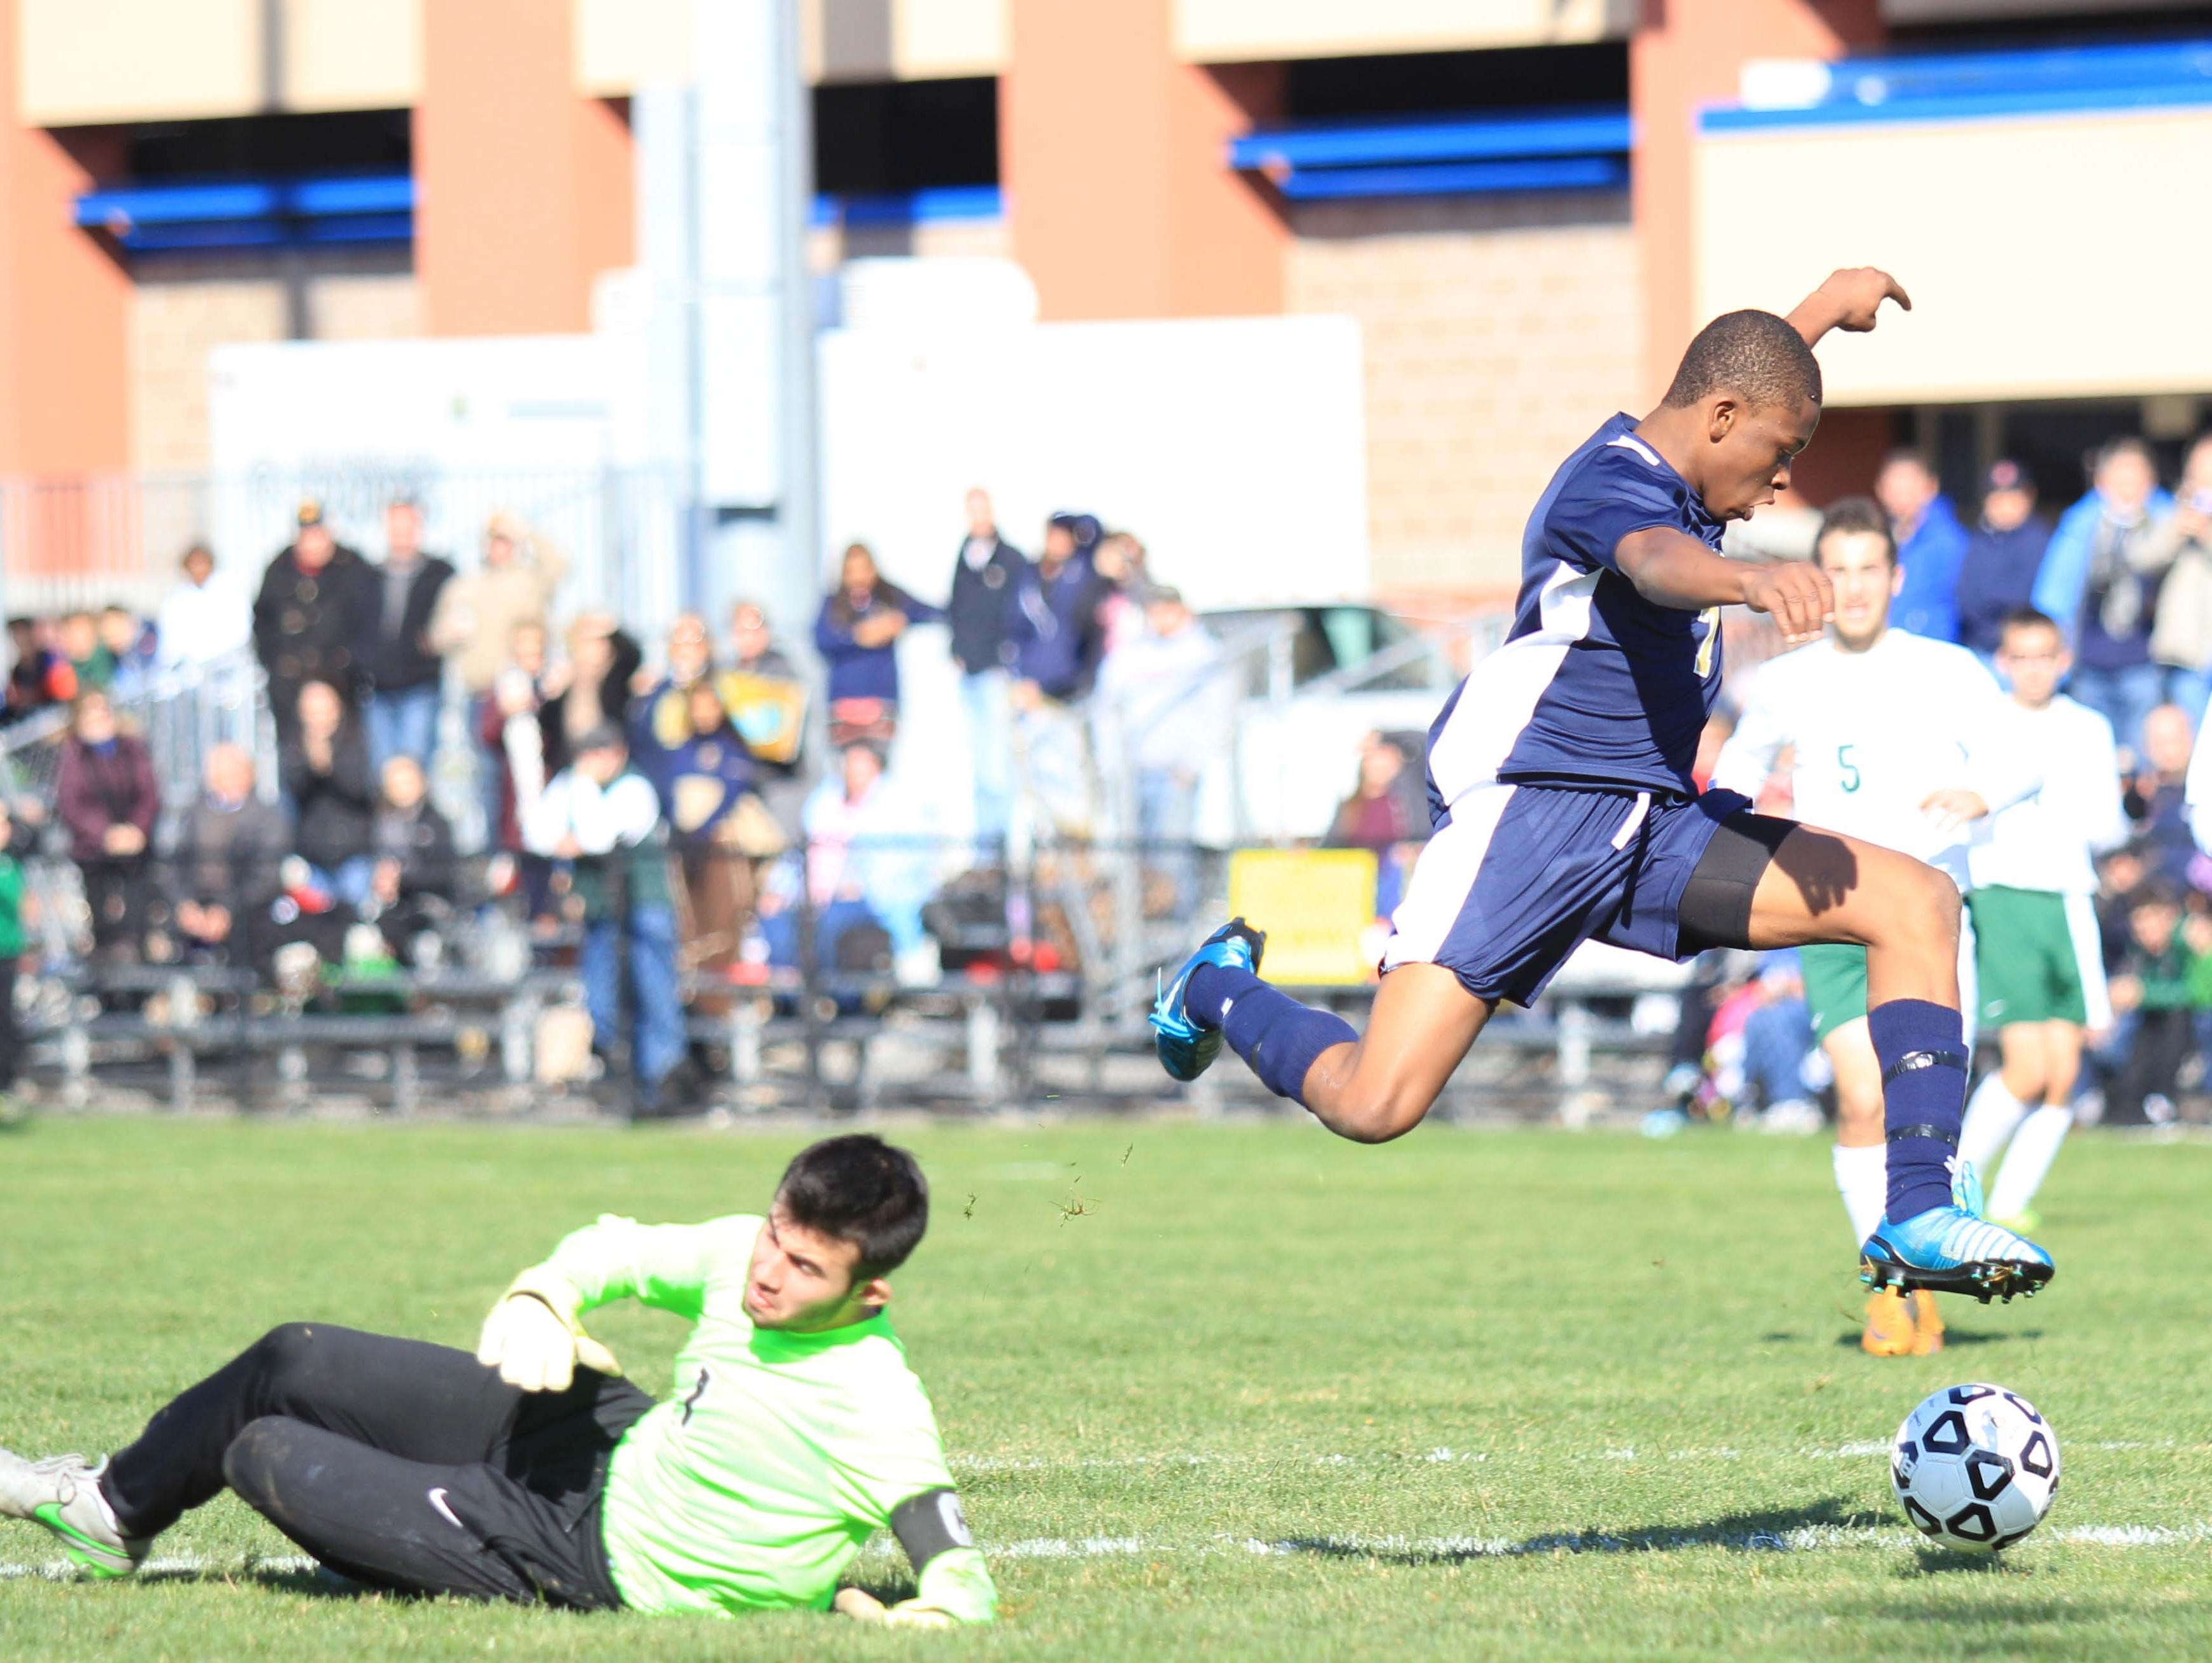 Notre Dame's Rocco Coulibaly (right) leaps over goalie Noah Dunn to score during the NYSPHSAA Class C final in Middletown.